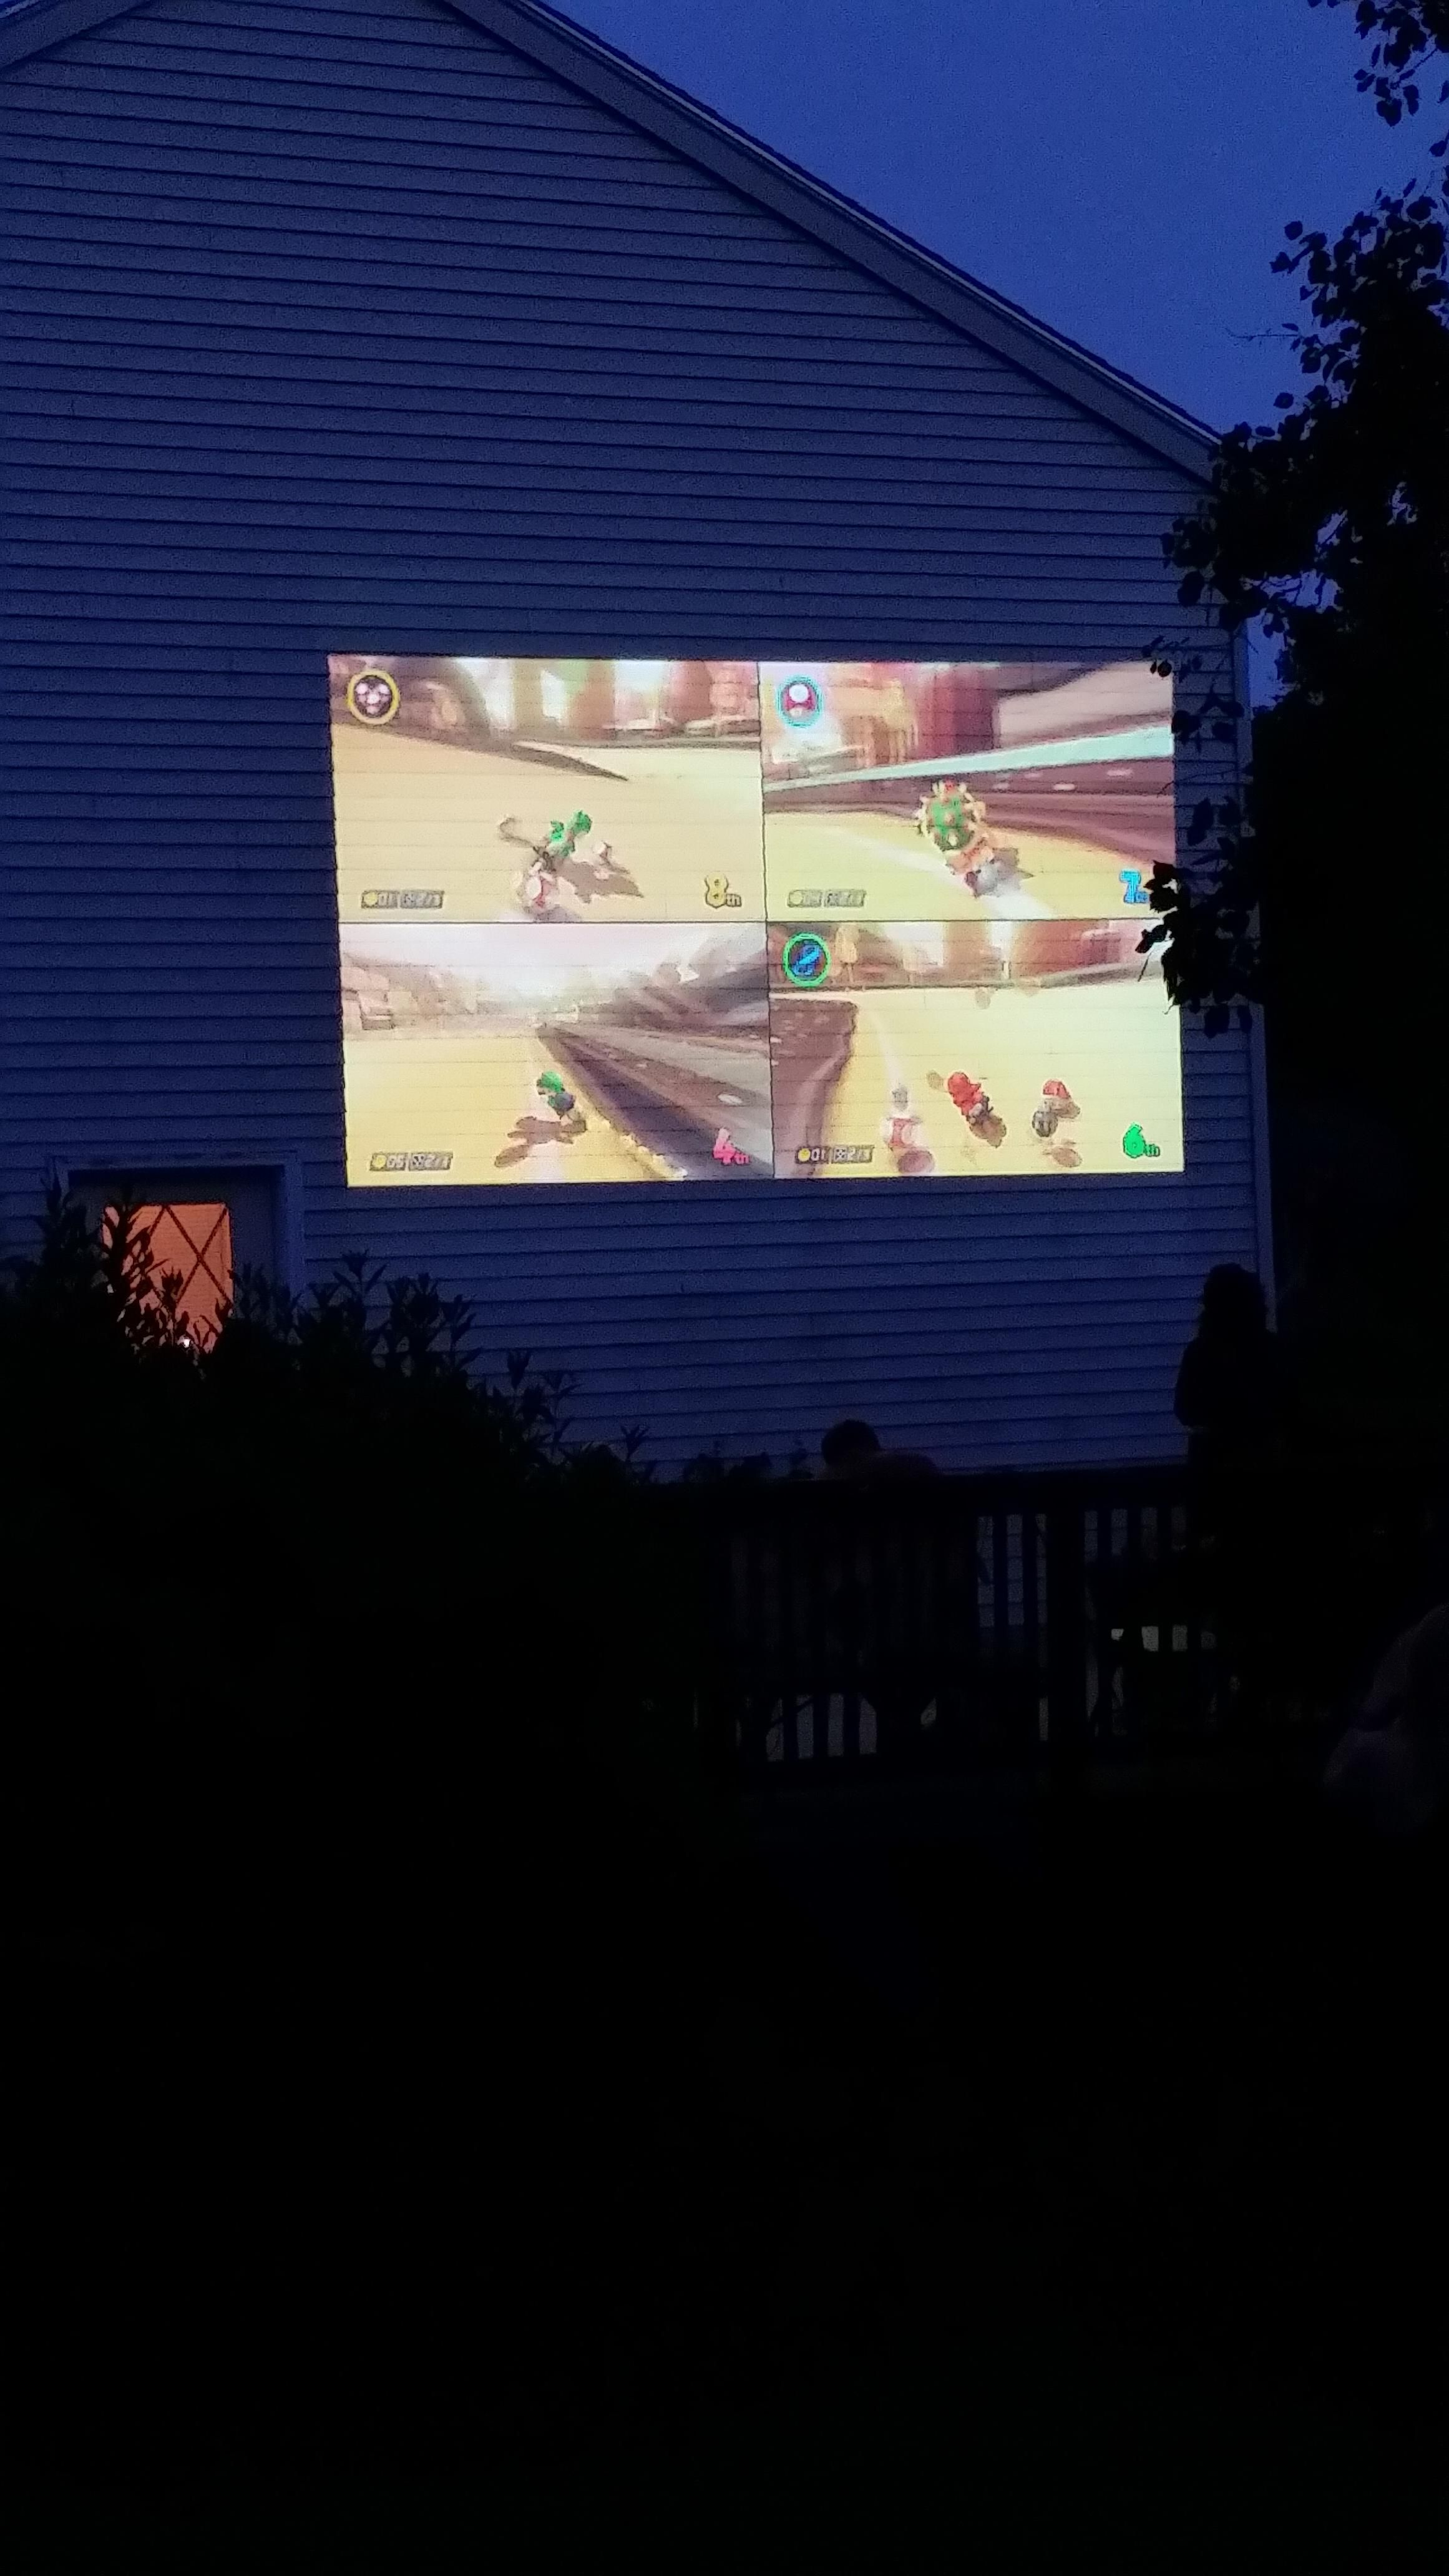 Mom Told Us To Play Outside Nintendo Mariokart 8 Edition Wiiu Mk8 Game Pictures Legend Of Zelda The Outsiders